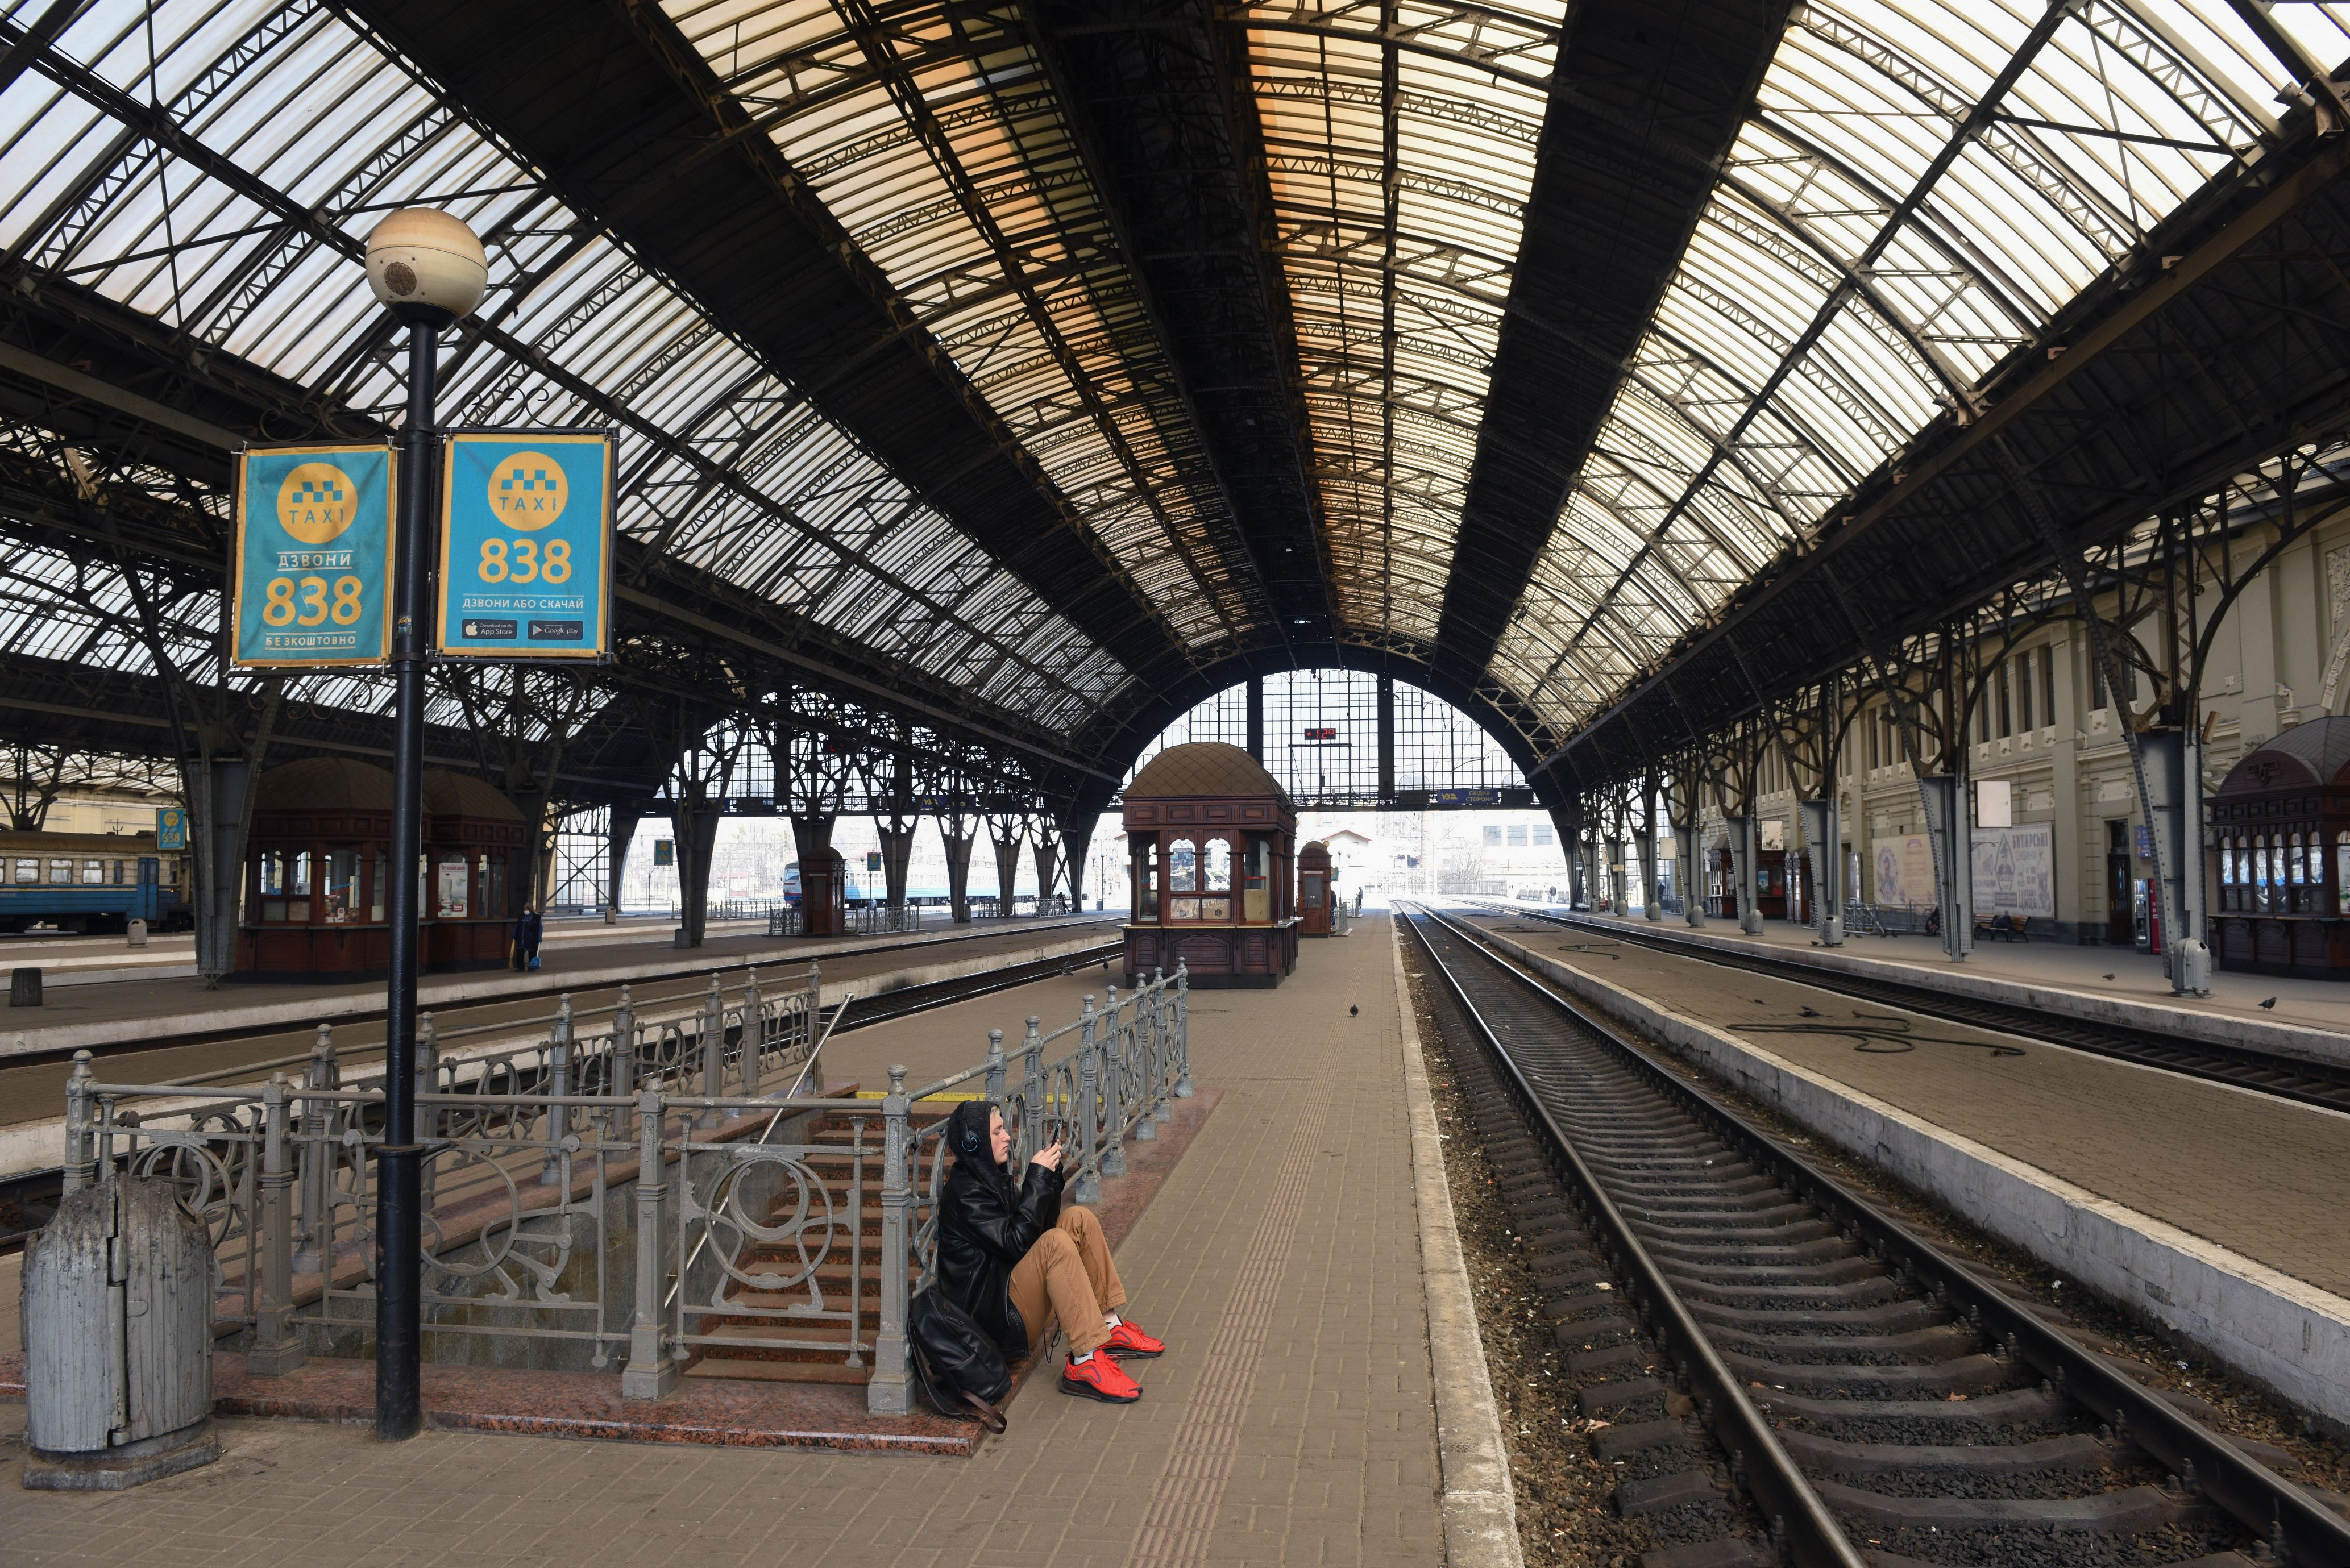 A man in an empty train station looks at his phone.